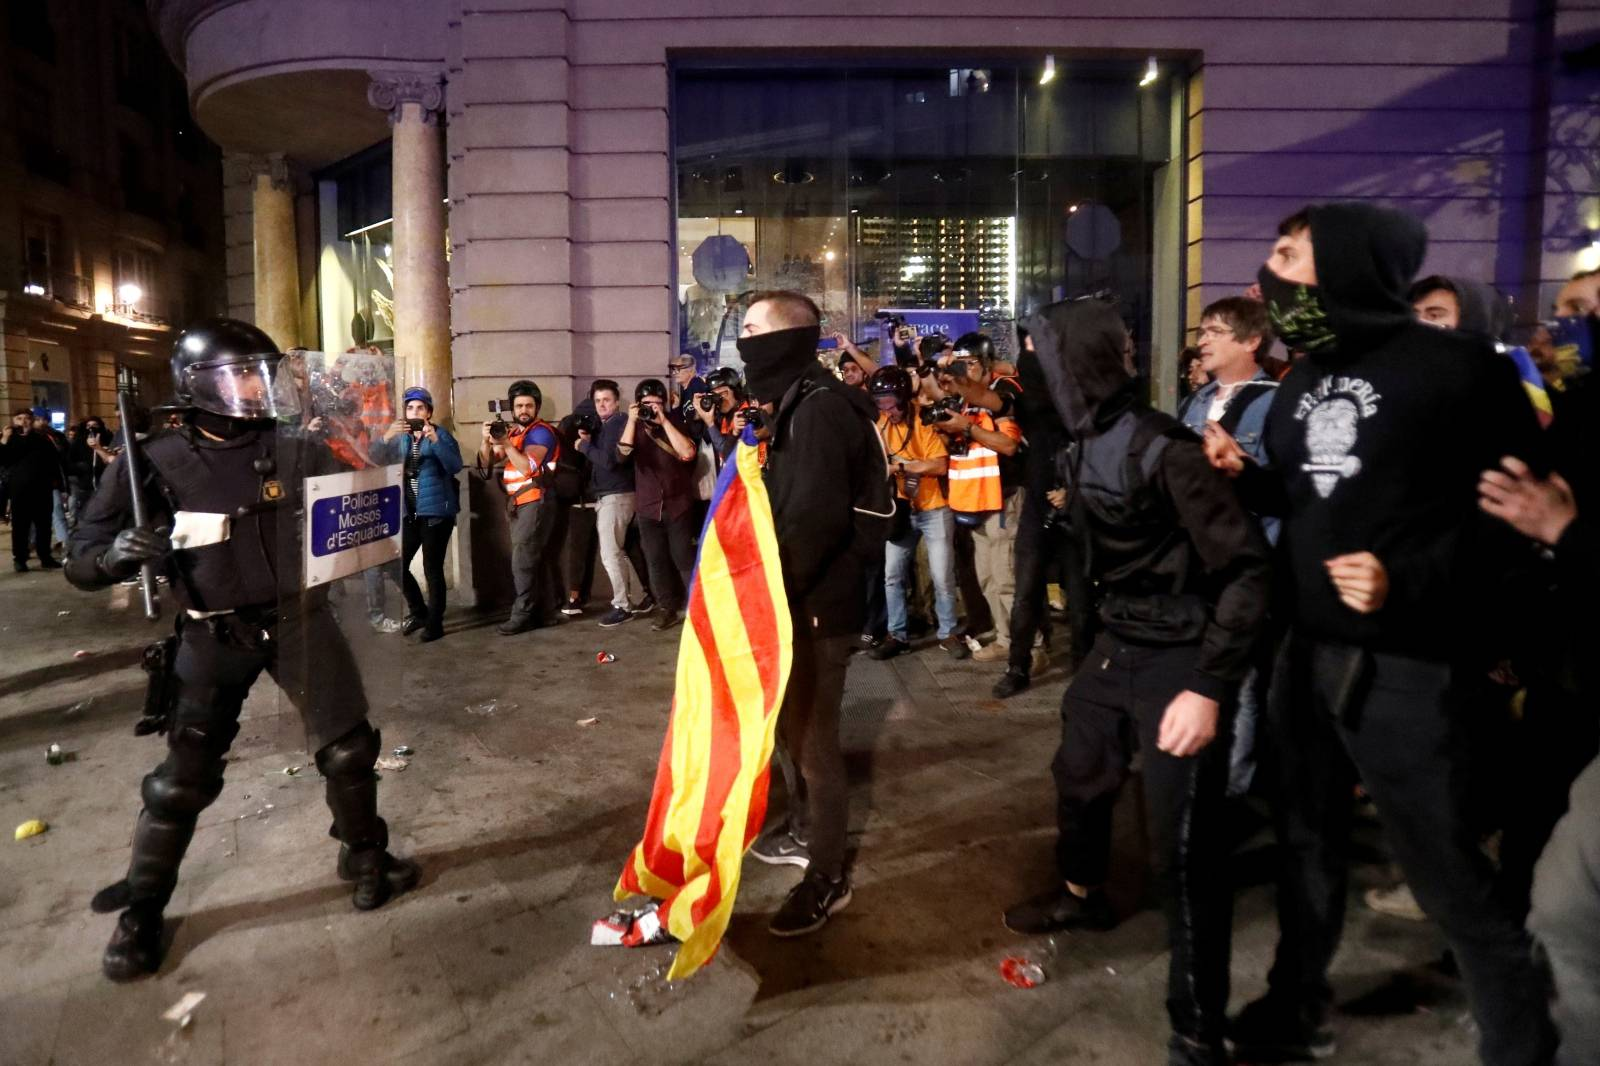 Protest against police action in Barcelona